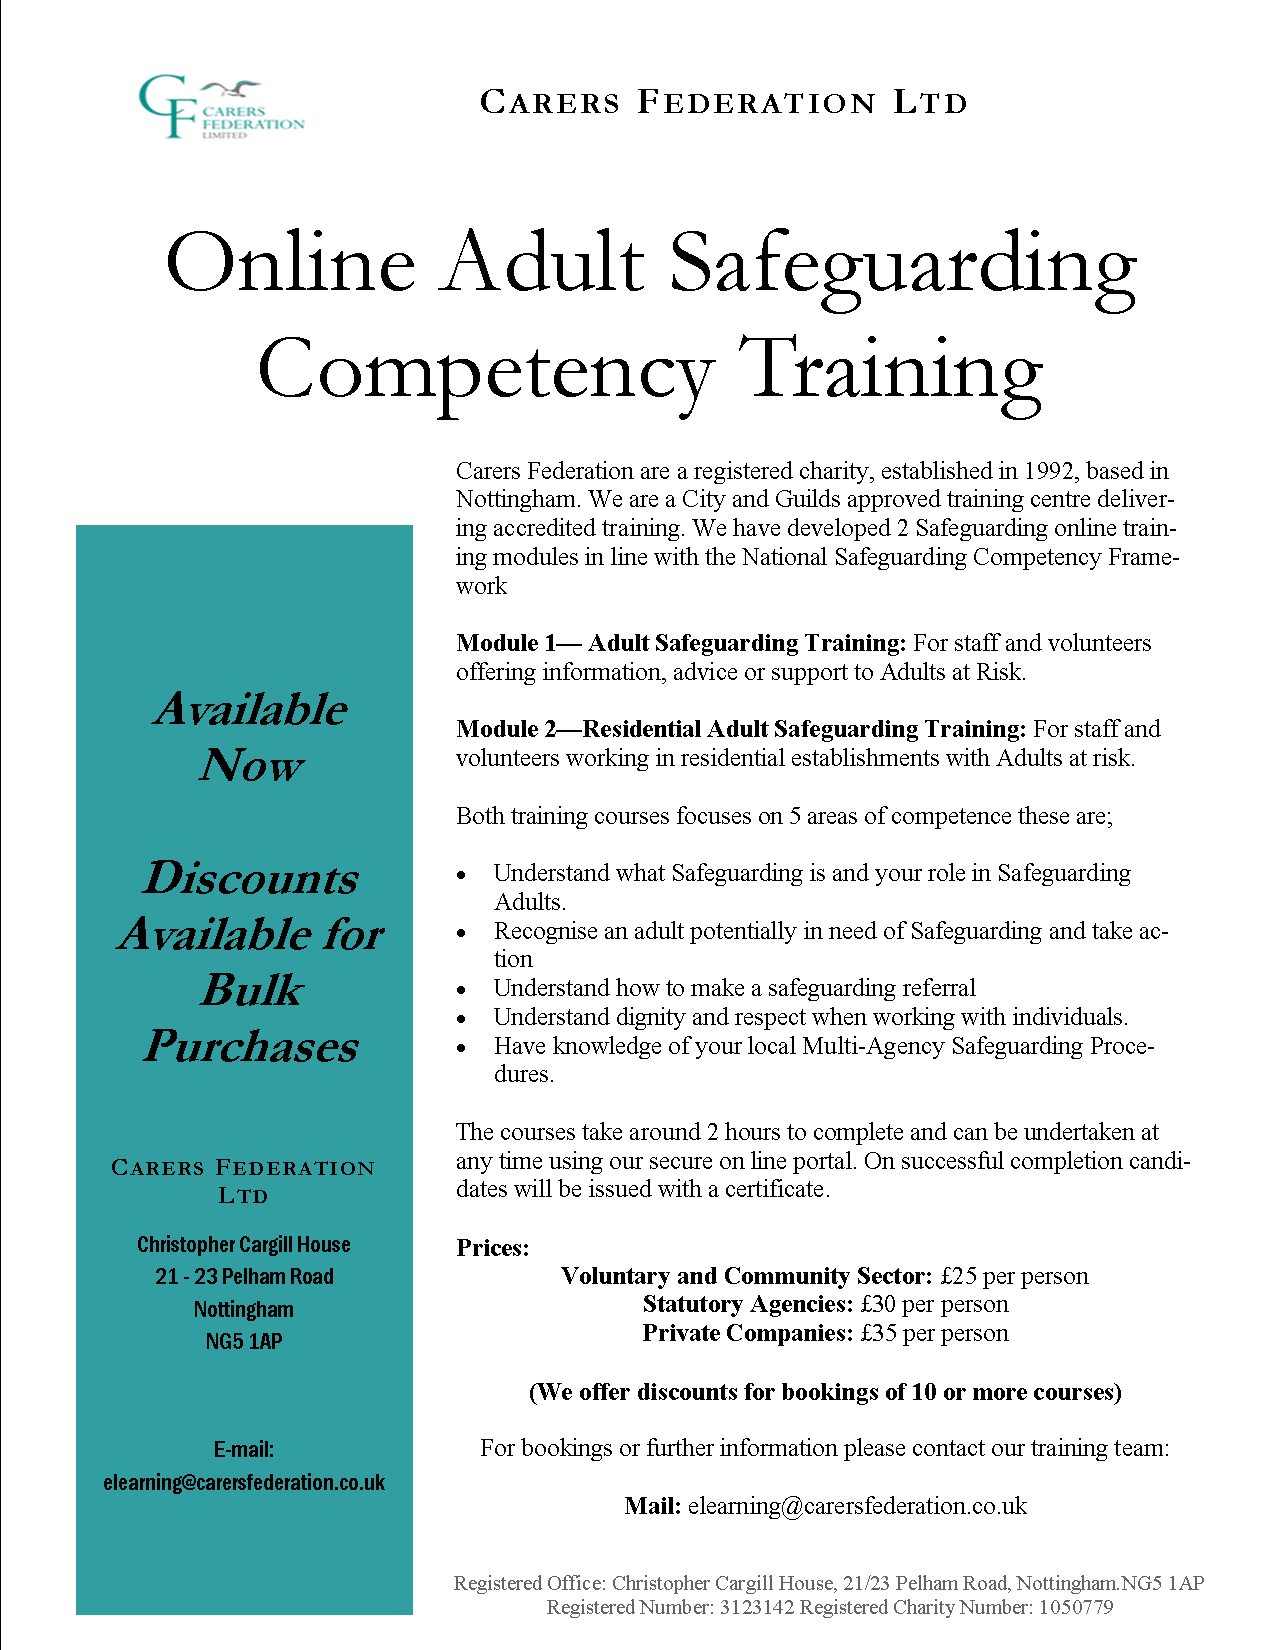 Attachment Safeguarding Training  flyer Feb 2019.png